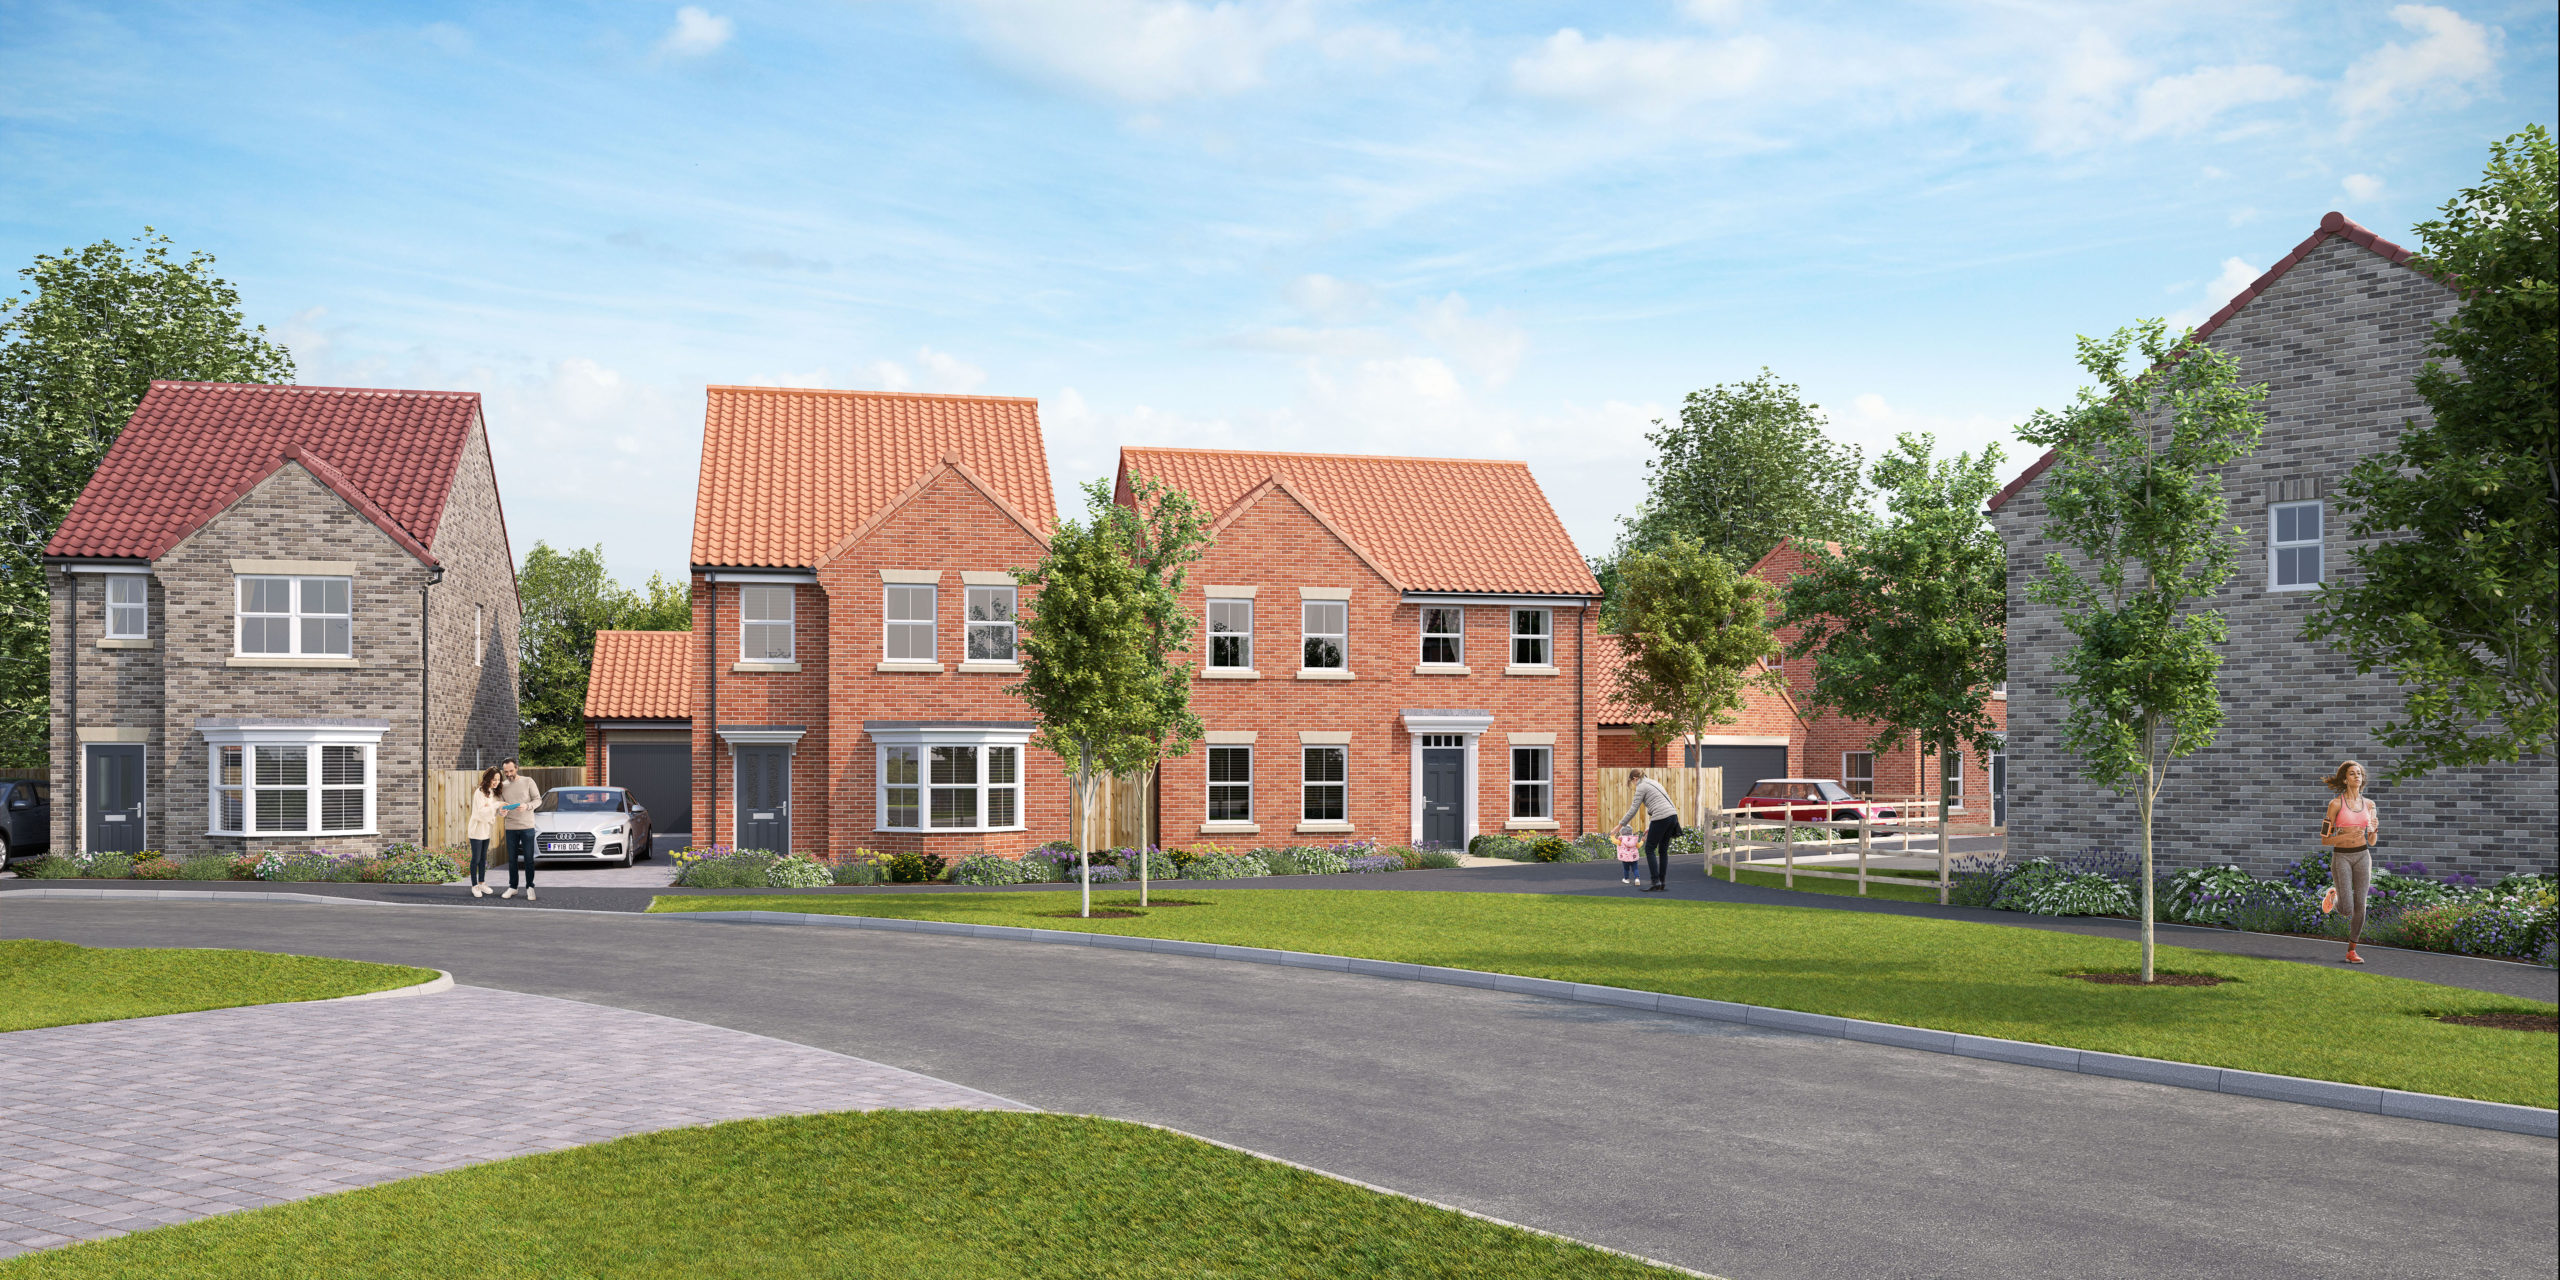 Peter Ward Homes moves onto new Lincolnshire site